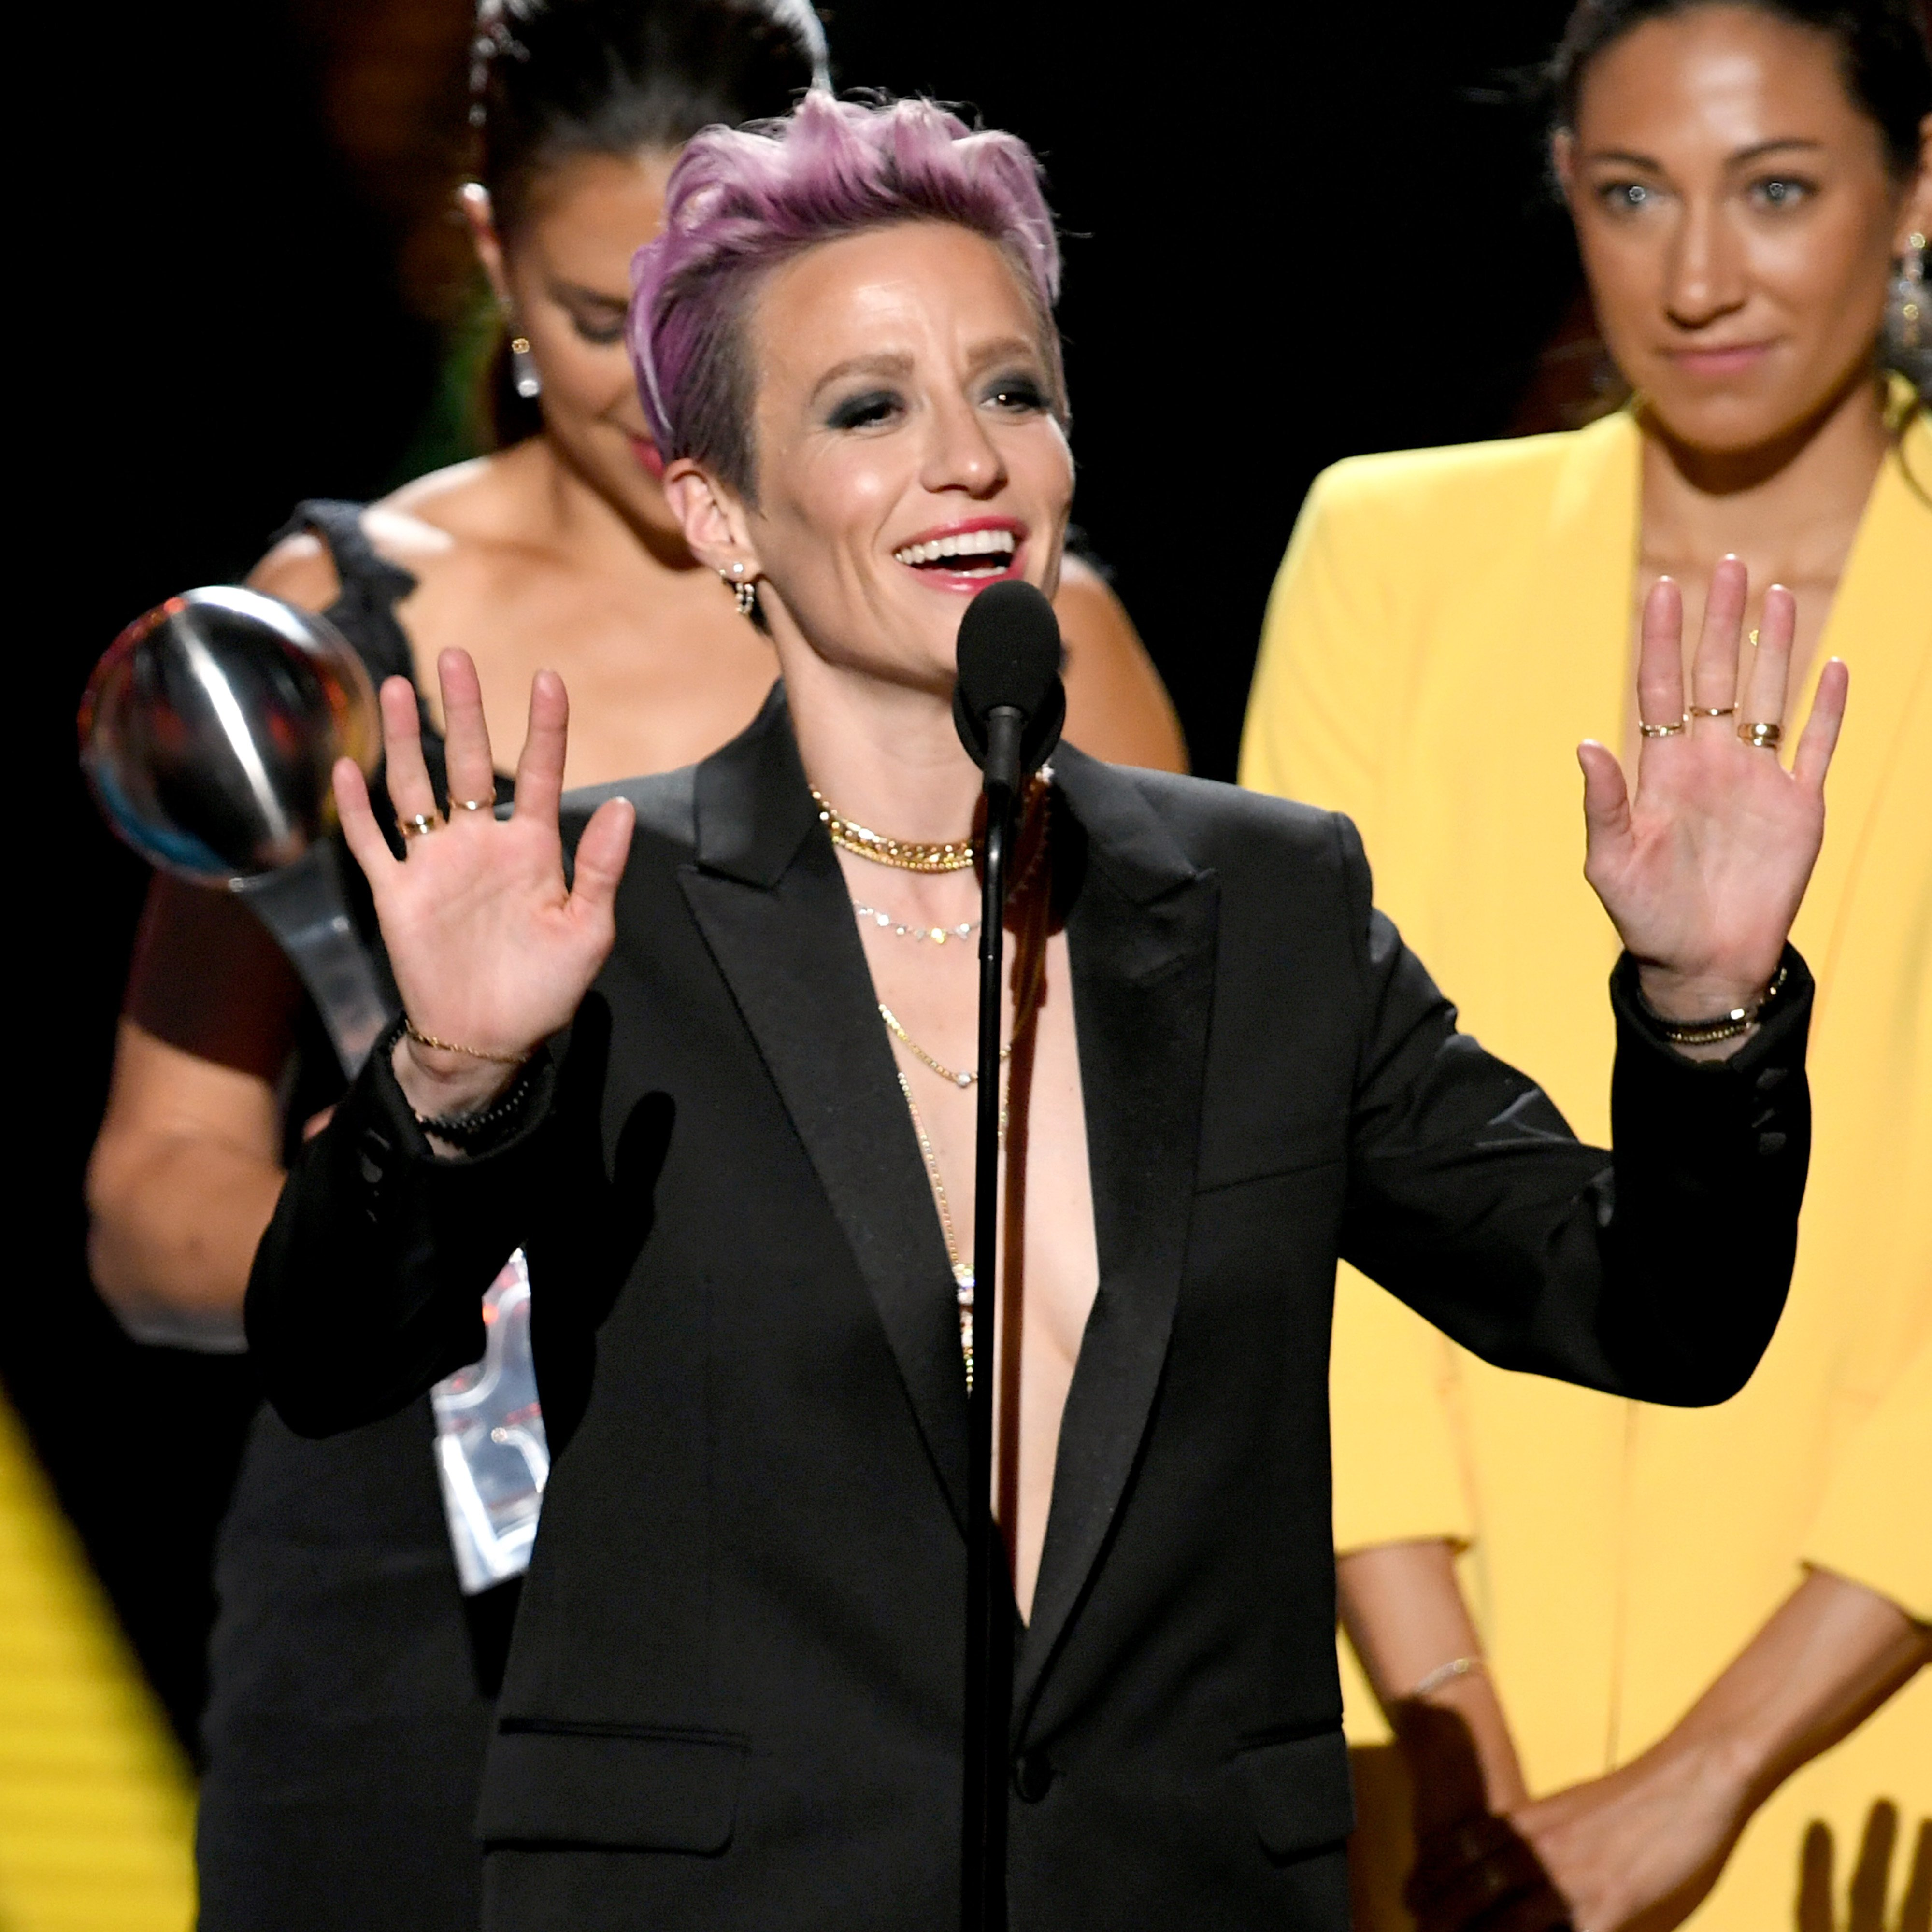 Megan Rapinoe speaks at the Annual ESPY Awards on July 10 2019 | Photo: Getty Images